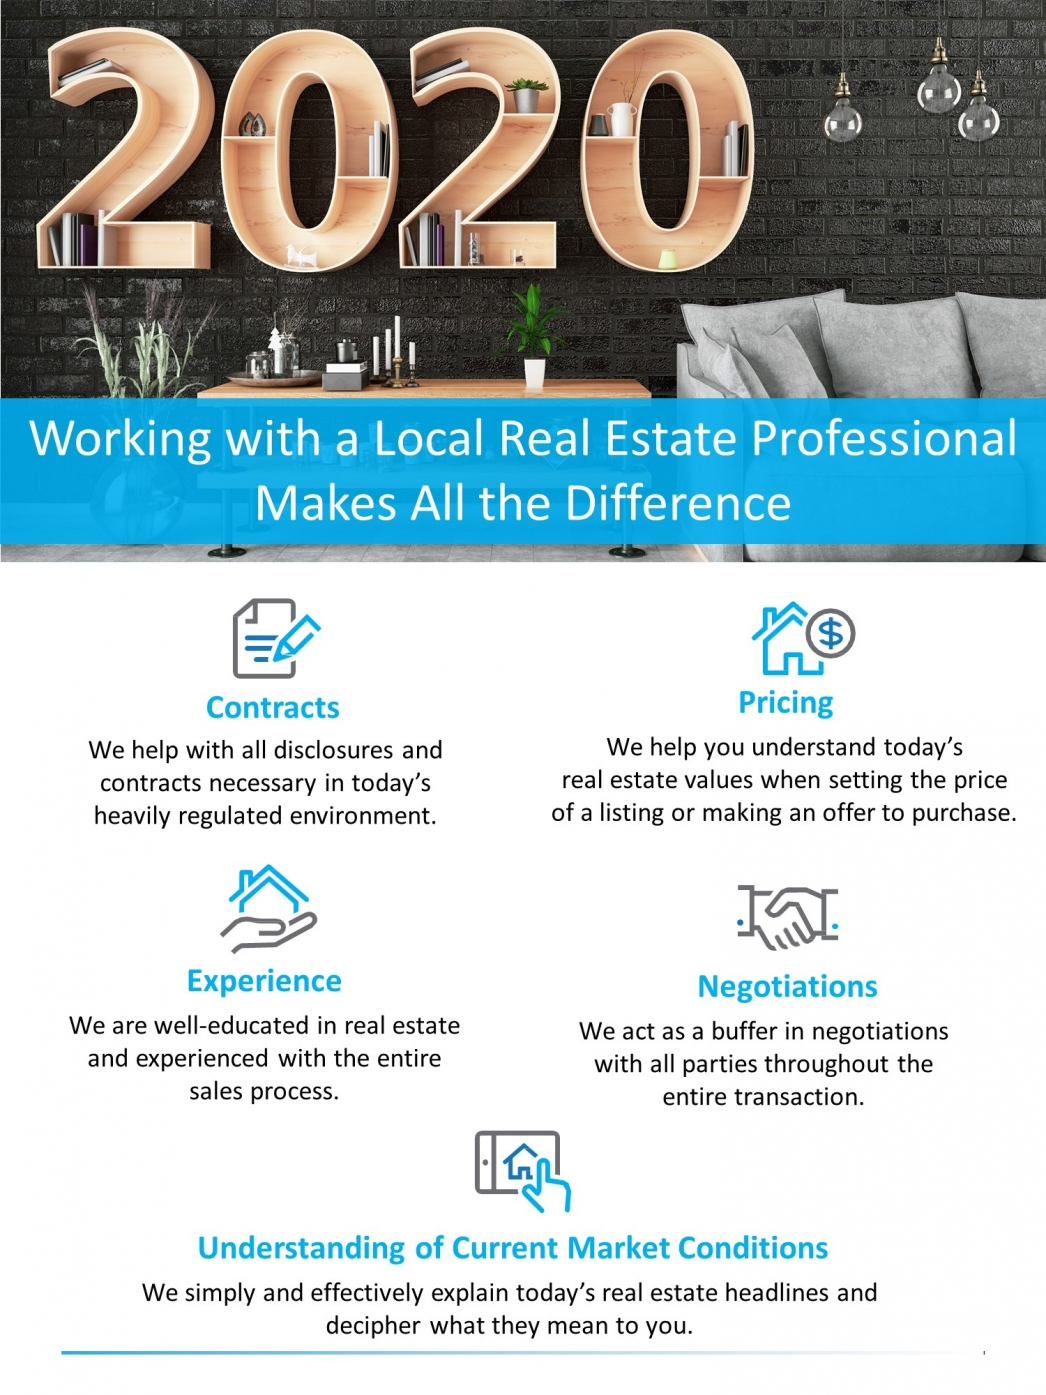 Working with a Local Real Estate Professional Makes All the Difference [INFOGRAPHIC]   MyKCM